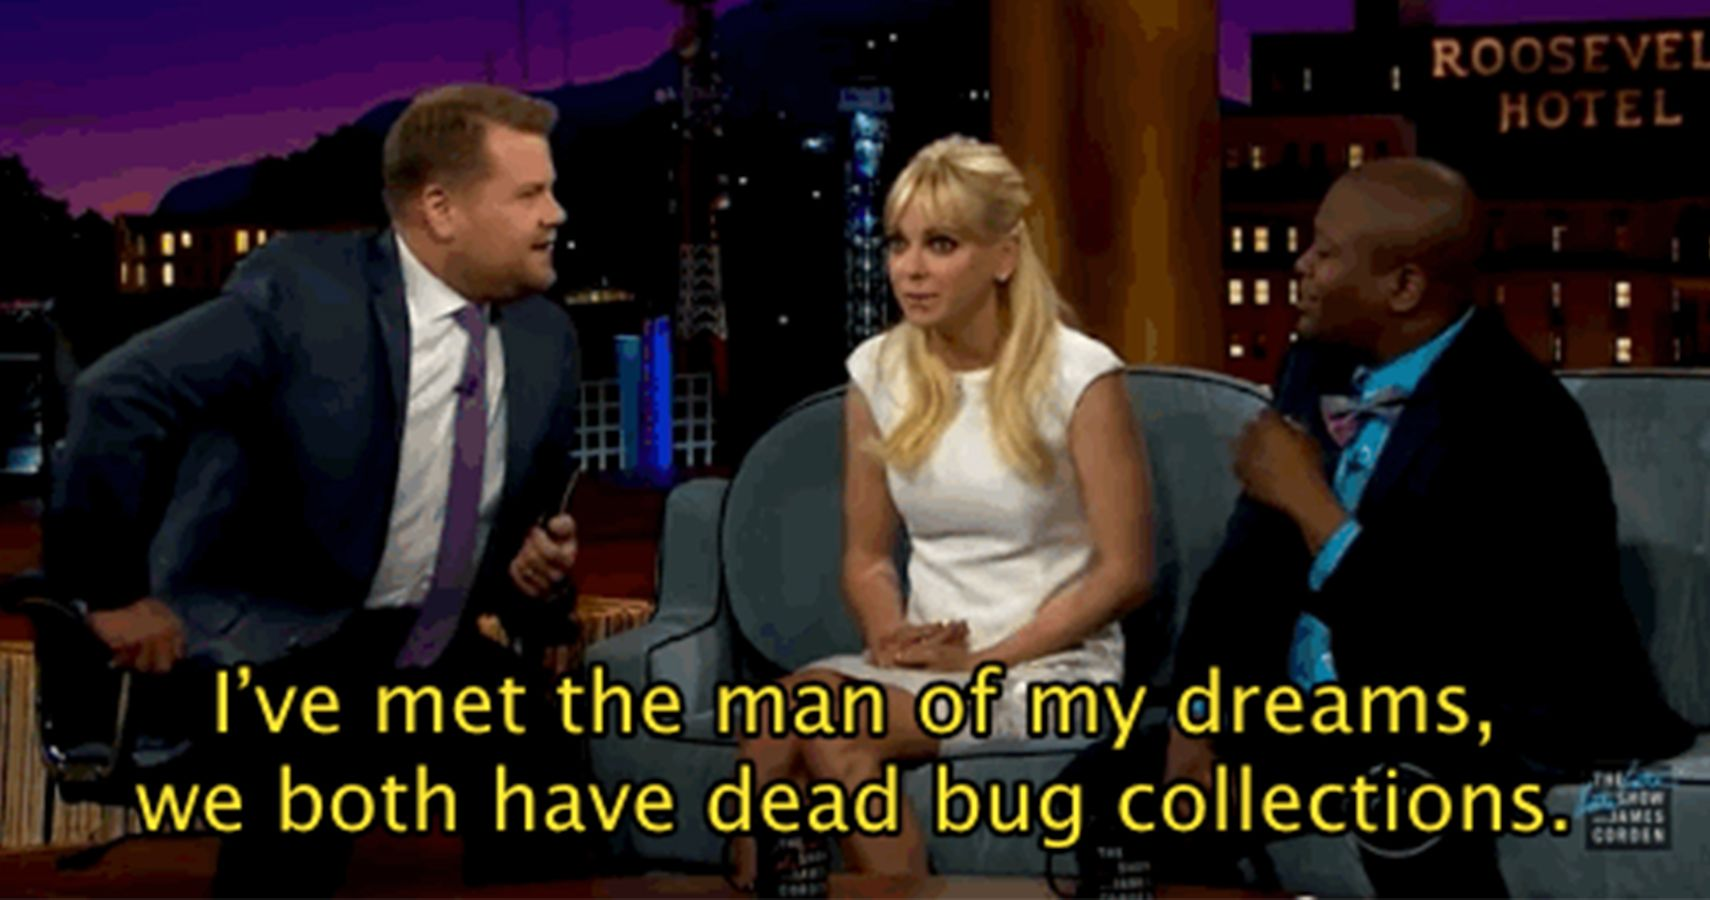 15 Amazing Chris Pratt And Anna Farris Moments That Were Seriously #RelationshipGoals